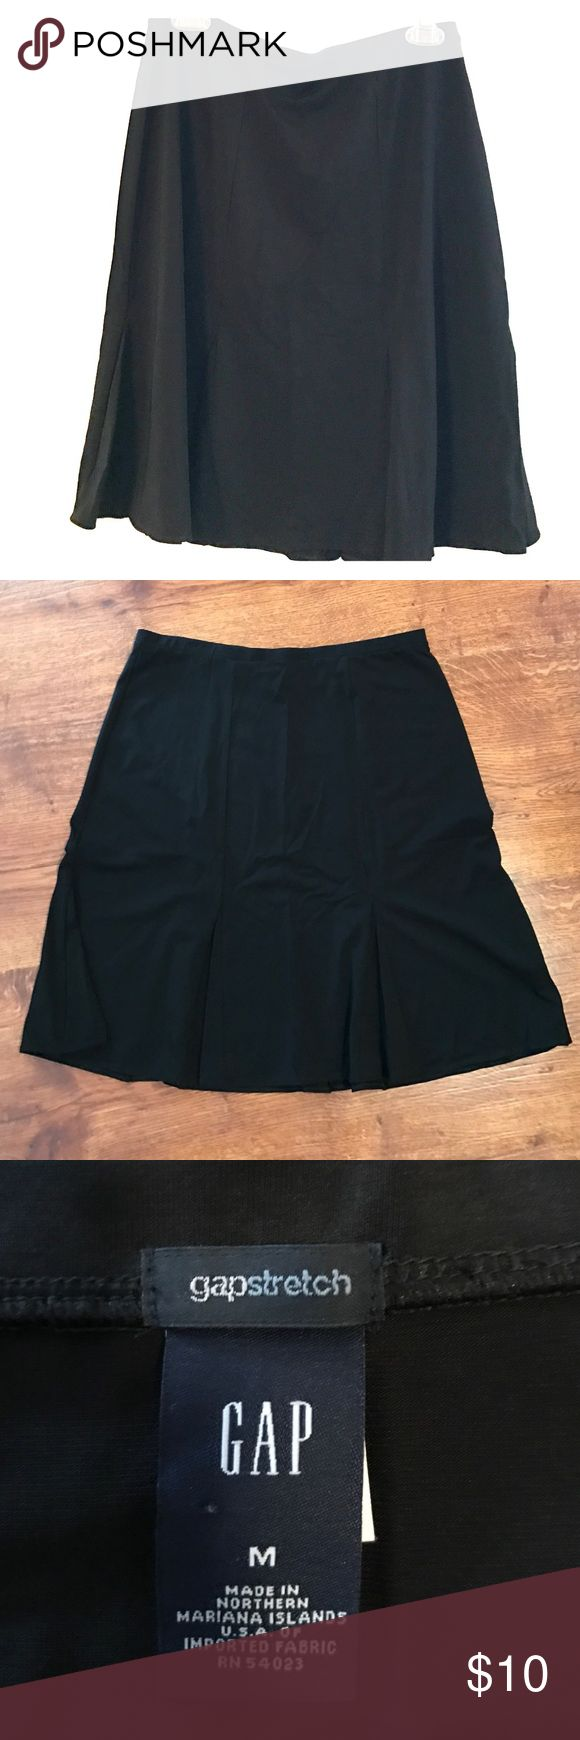 ❤️️FINAL SALE❤️ GAP Skirt GAP Stretch skirt with elastic waistband GAP Skirts